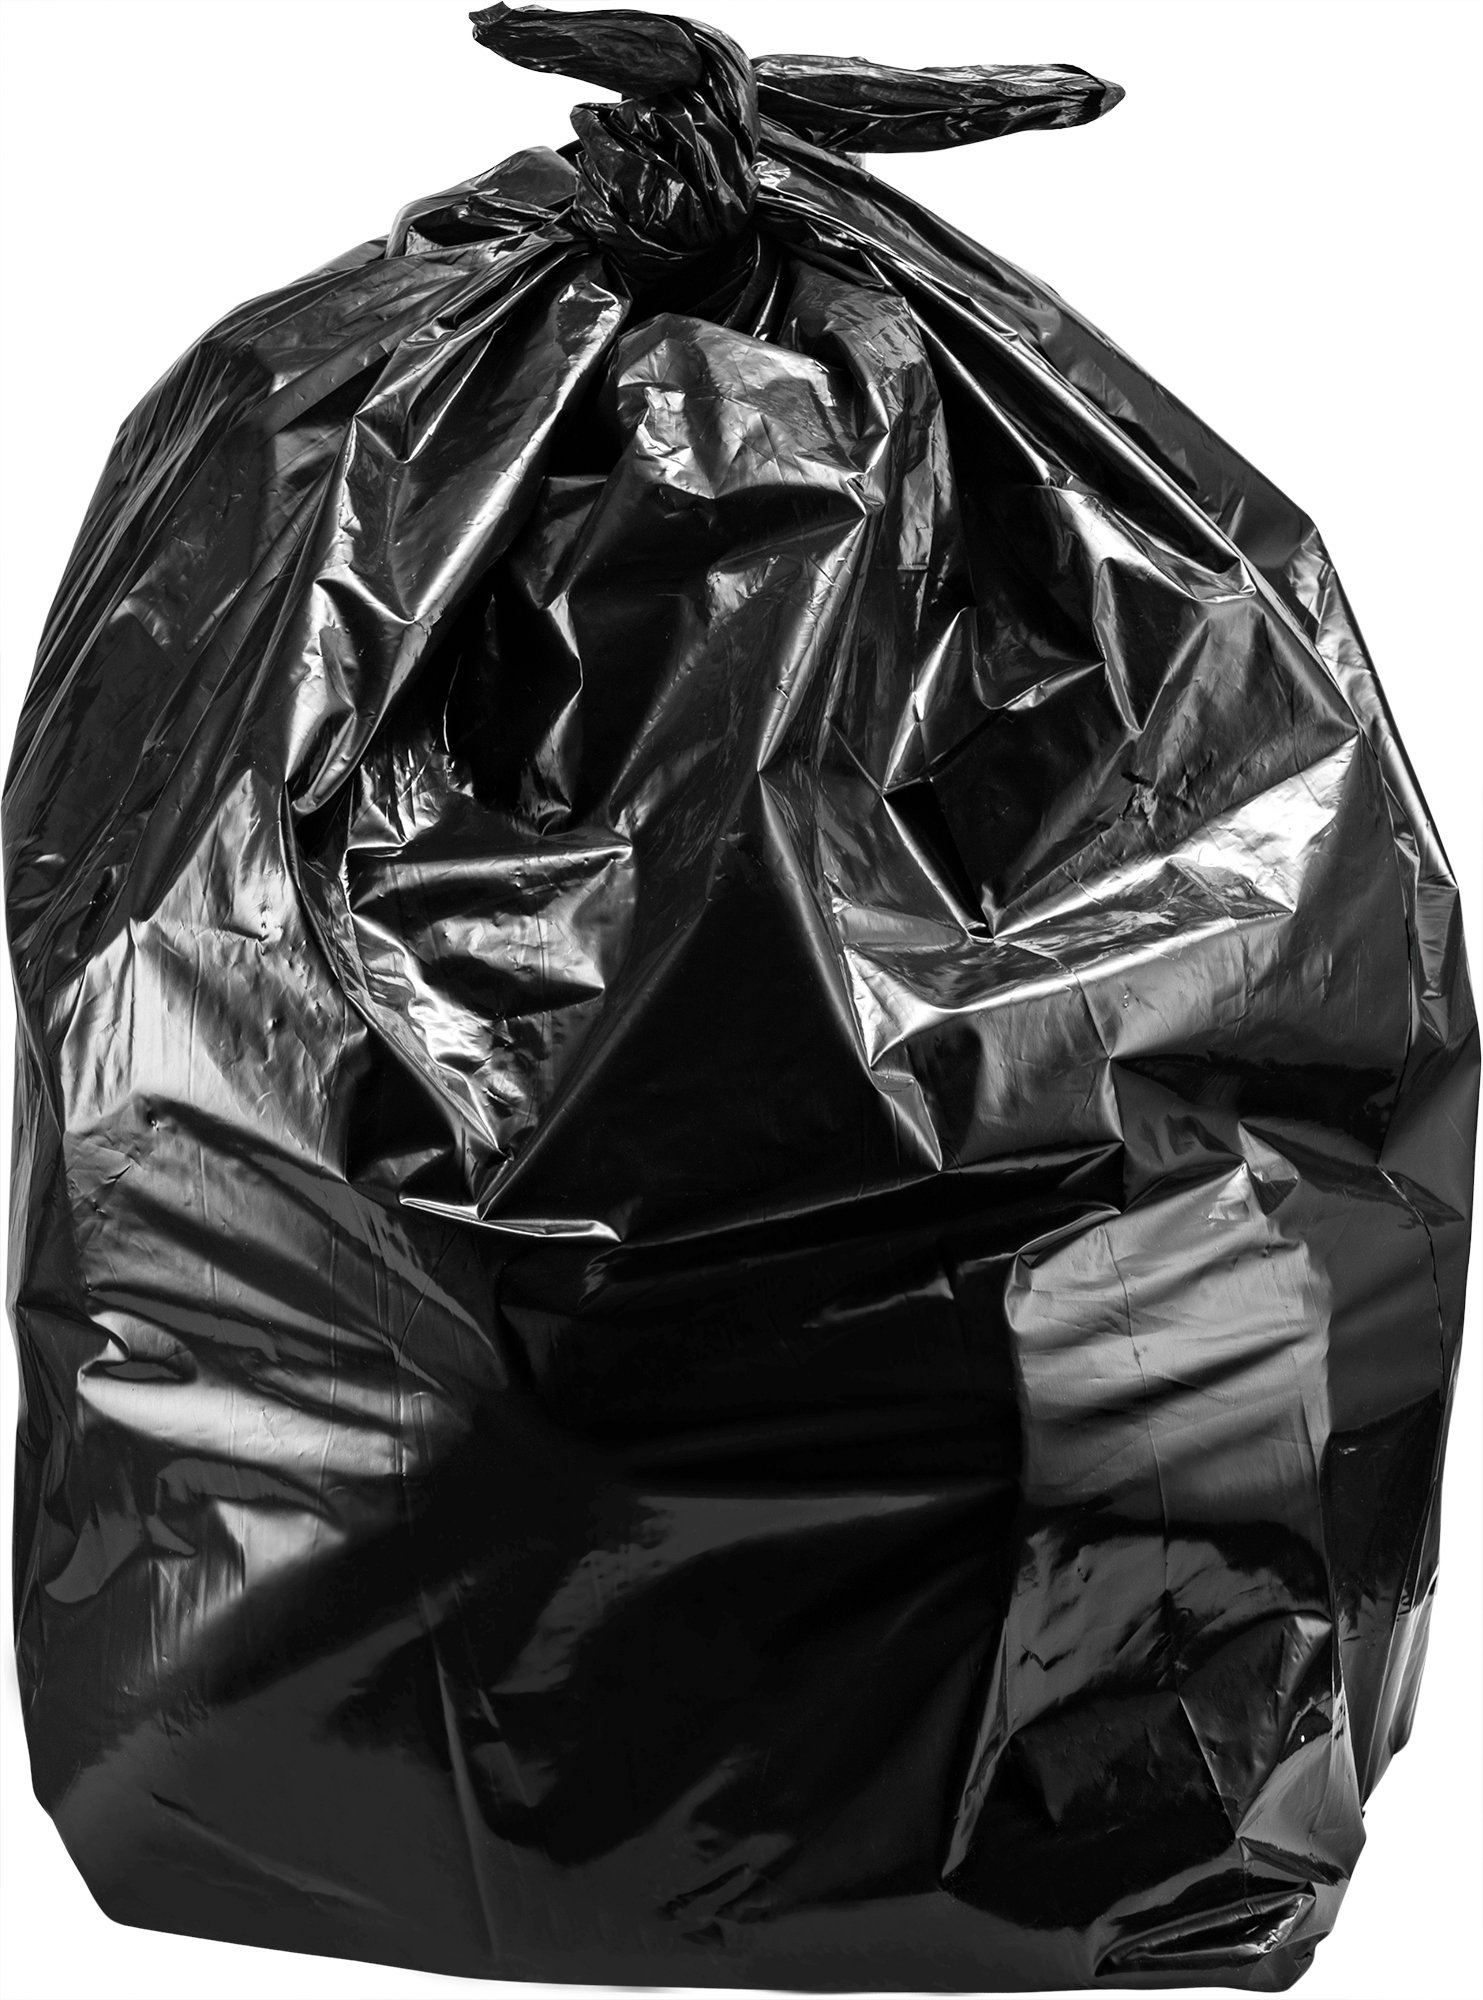 55-60 Gallon Trash Bags, 100/Count, Large Black Garbage Bags, 38'' W x 58'' H, 1.2 Mil by Tasker (Image #5)